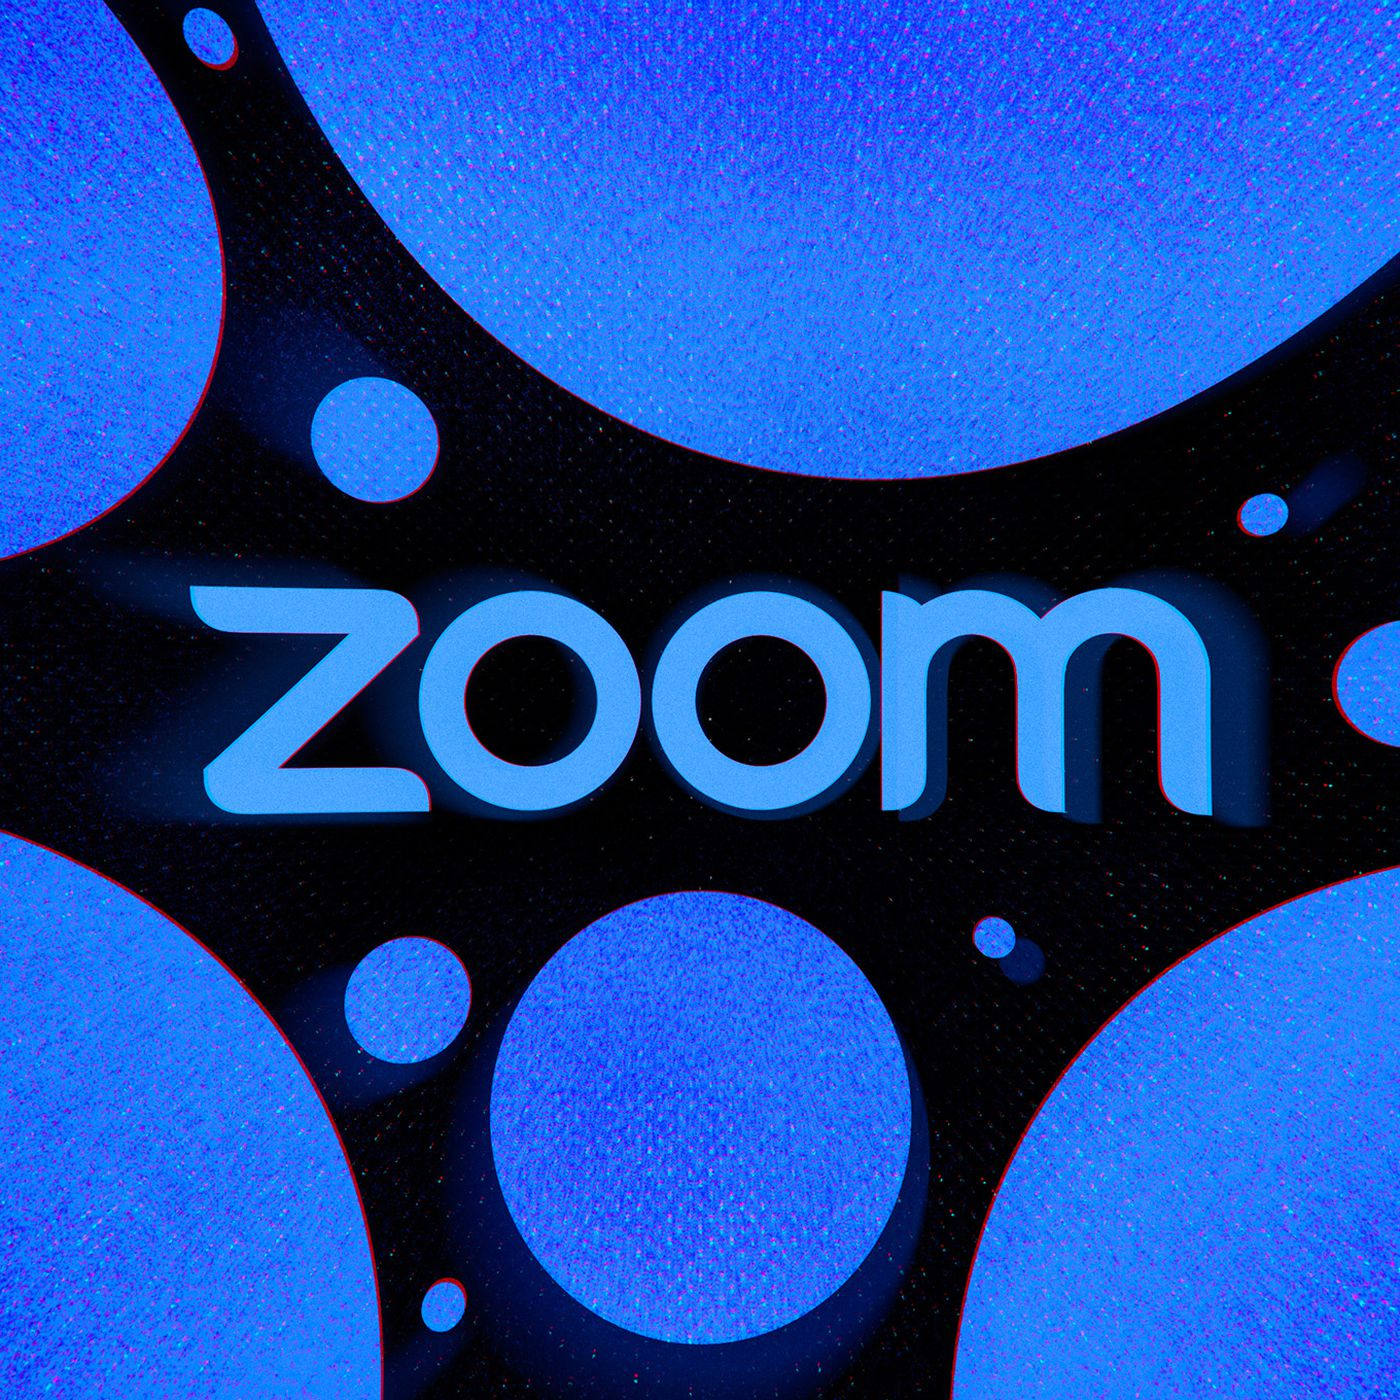 theverge.com - Kim Lyons - Zoom now has auto-generated captions available for free accounts